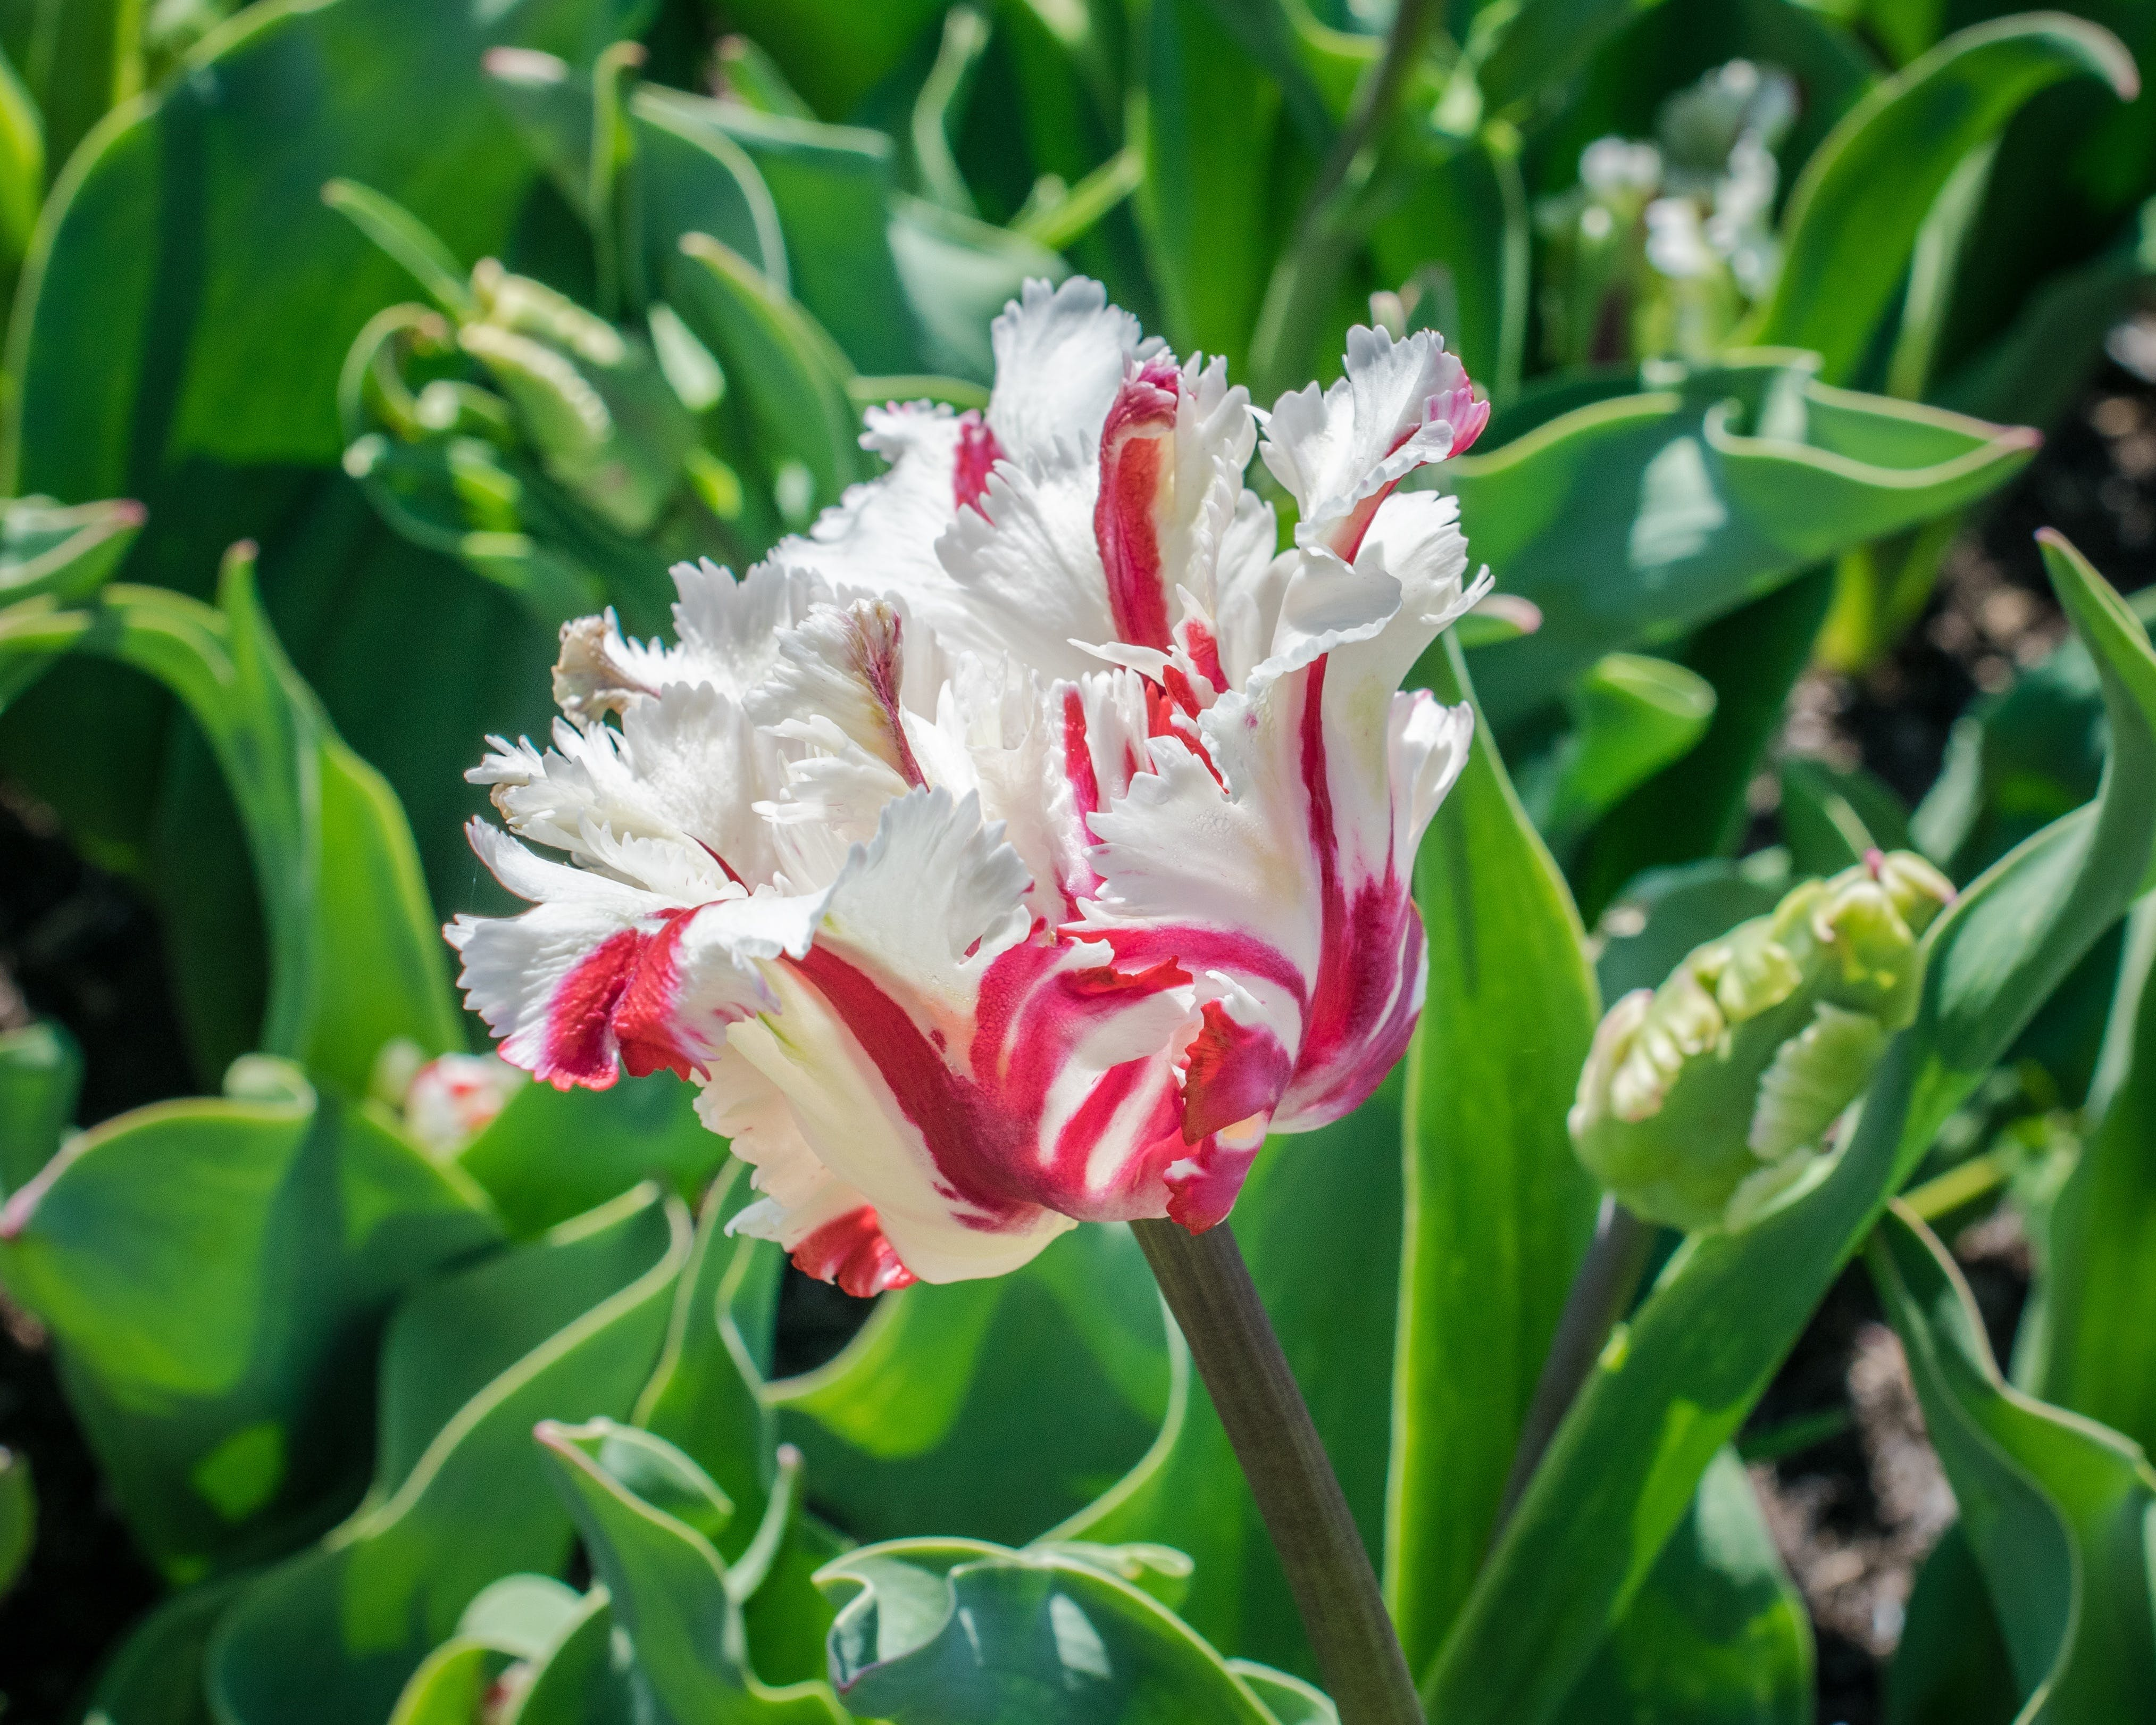 White and Red Flower during Day Time